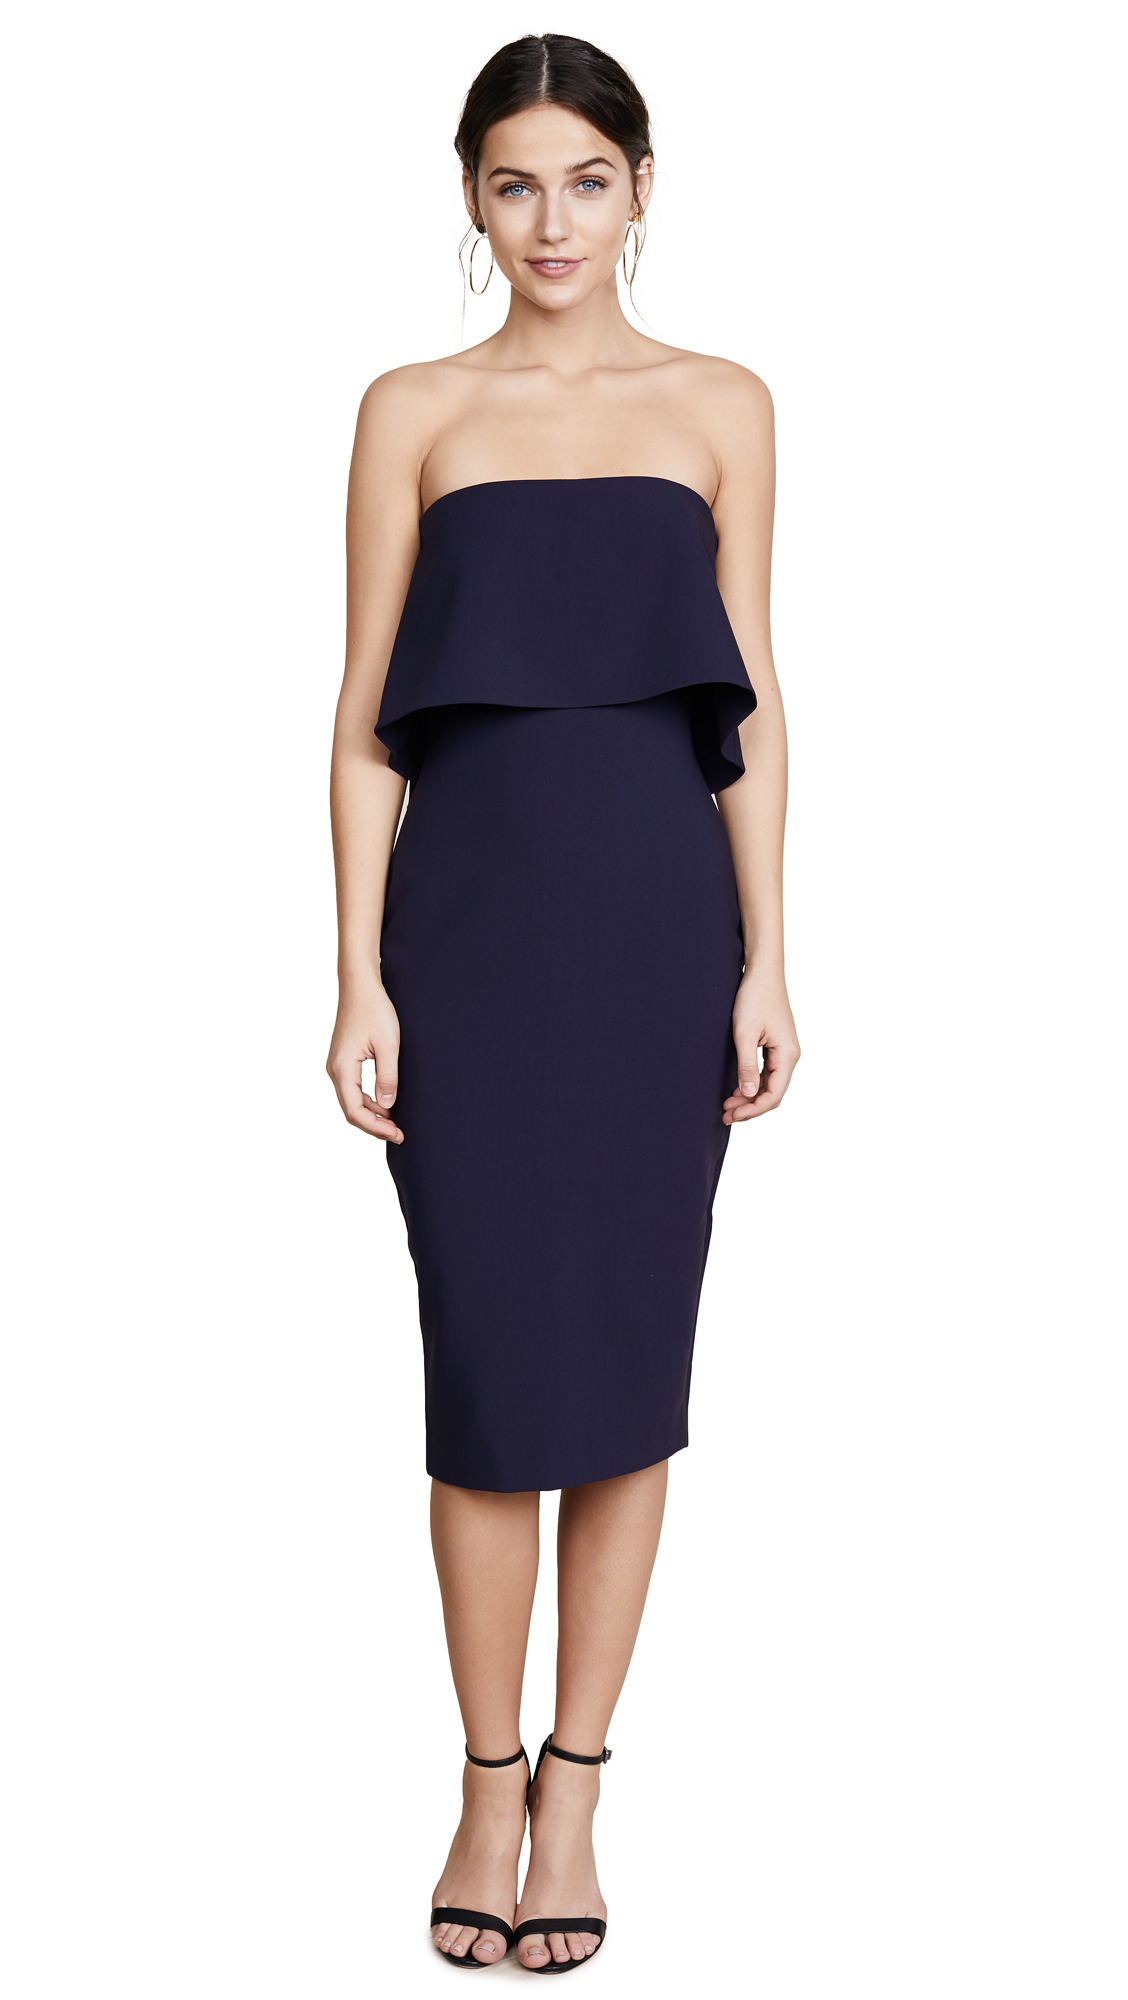 LIKELY Driggs Dress - Navy